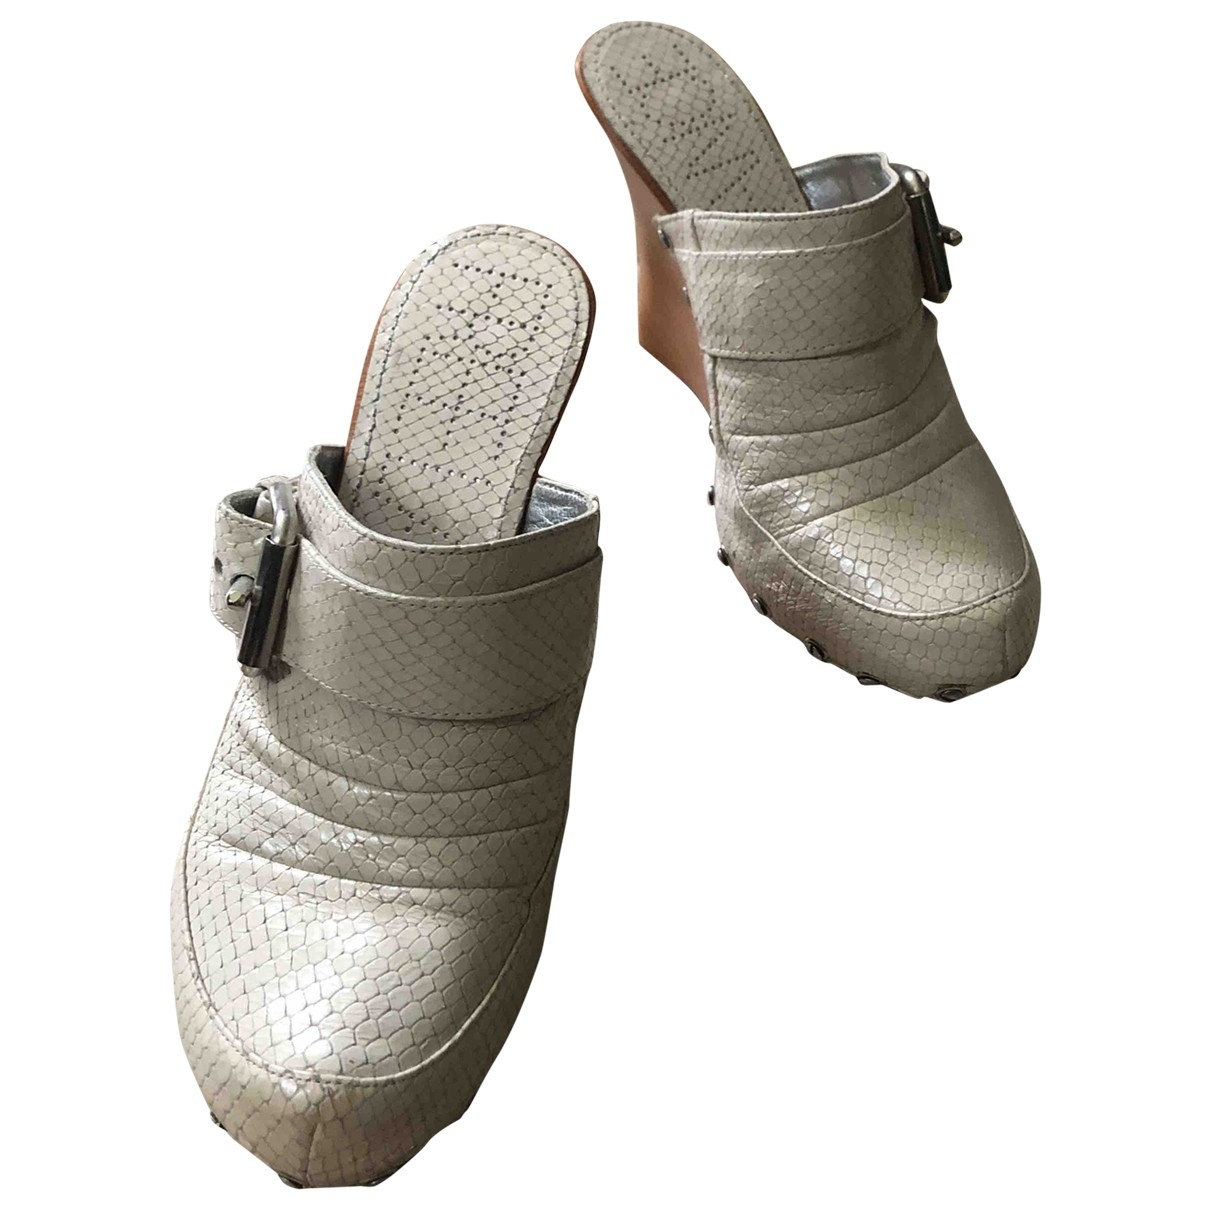 Free Lance \N Beige Leather Mules & Clogs for Women 38 EU